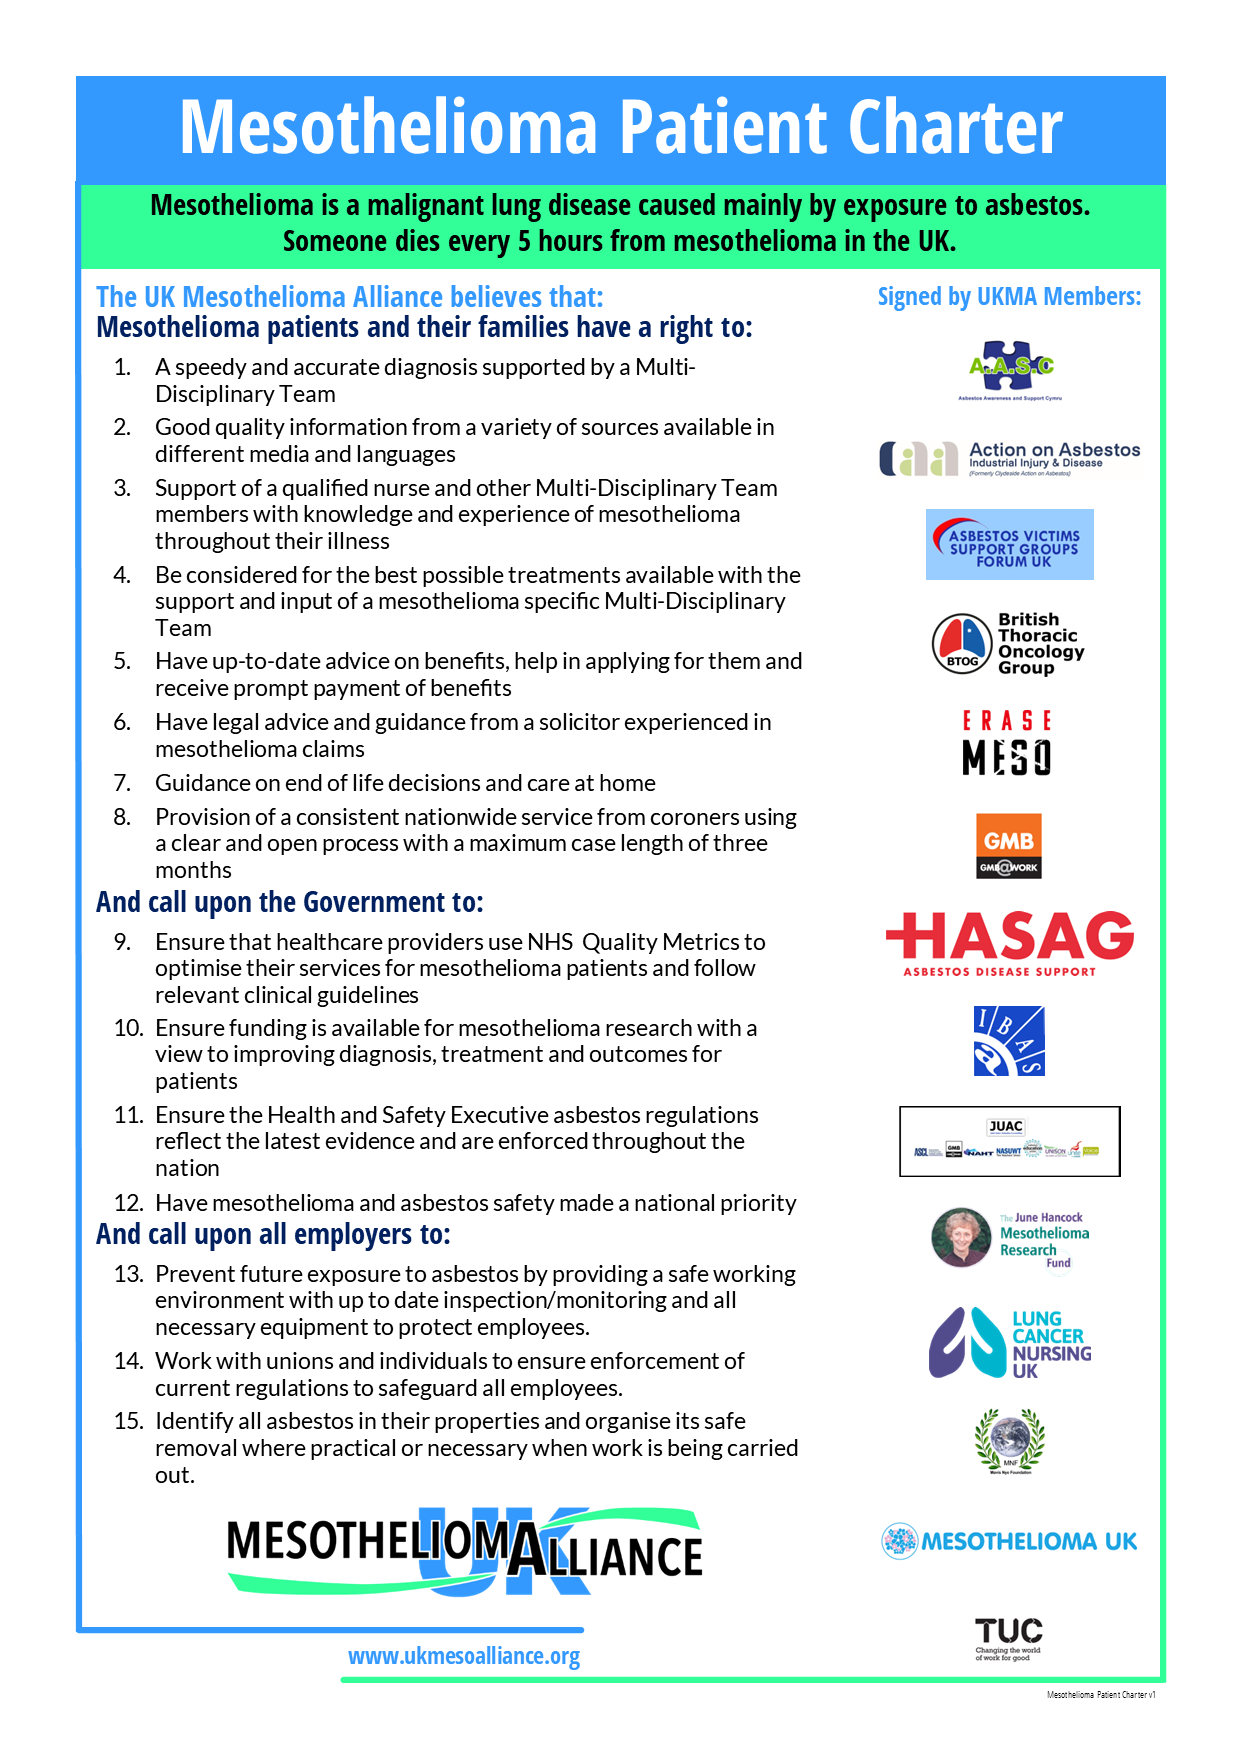 Download a PDF of the Mesothelioma Patient Charter